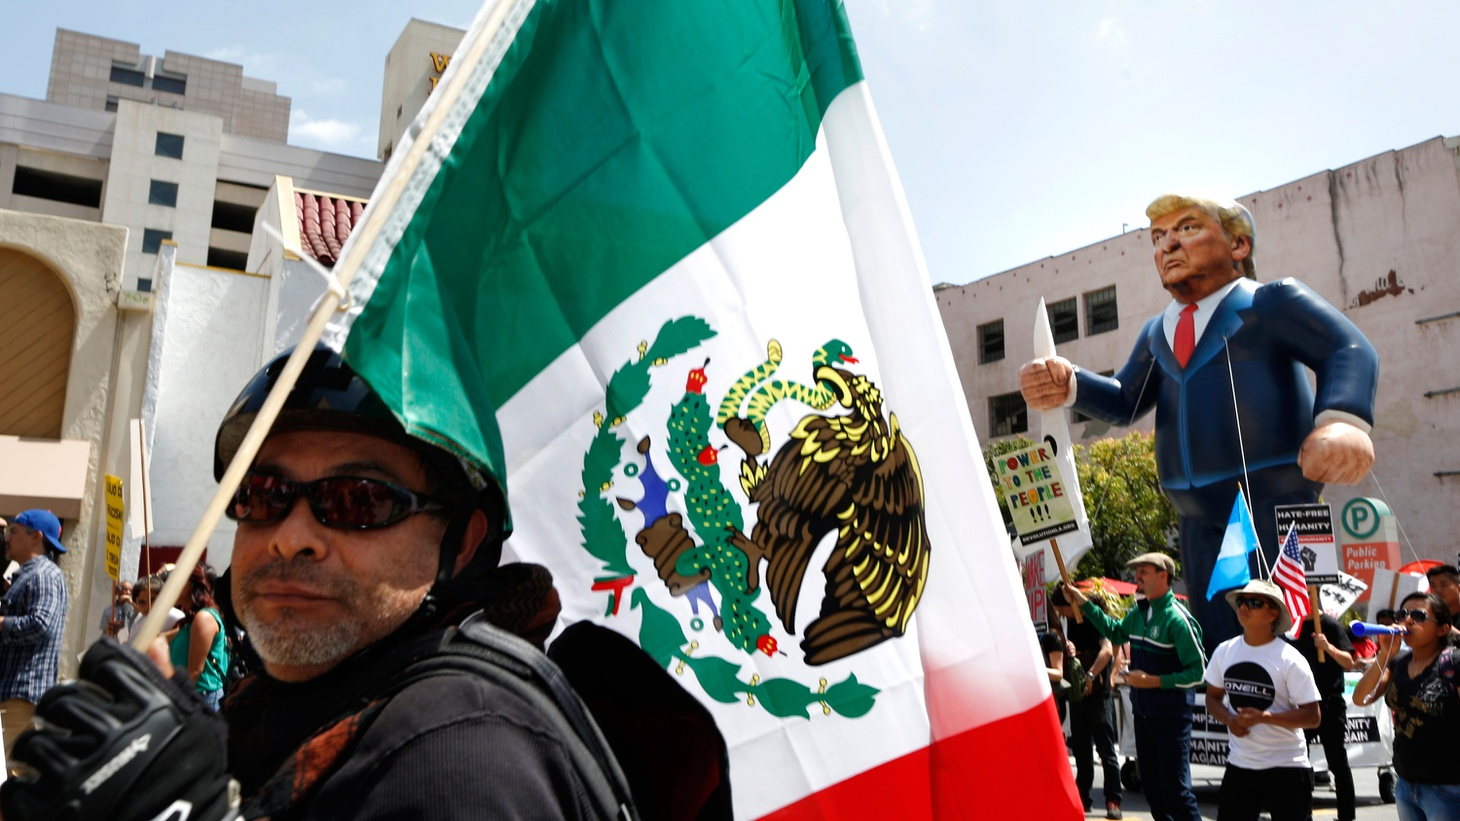 Is it OK to wave a Mexican flag at a Donald Trump protest?